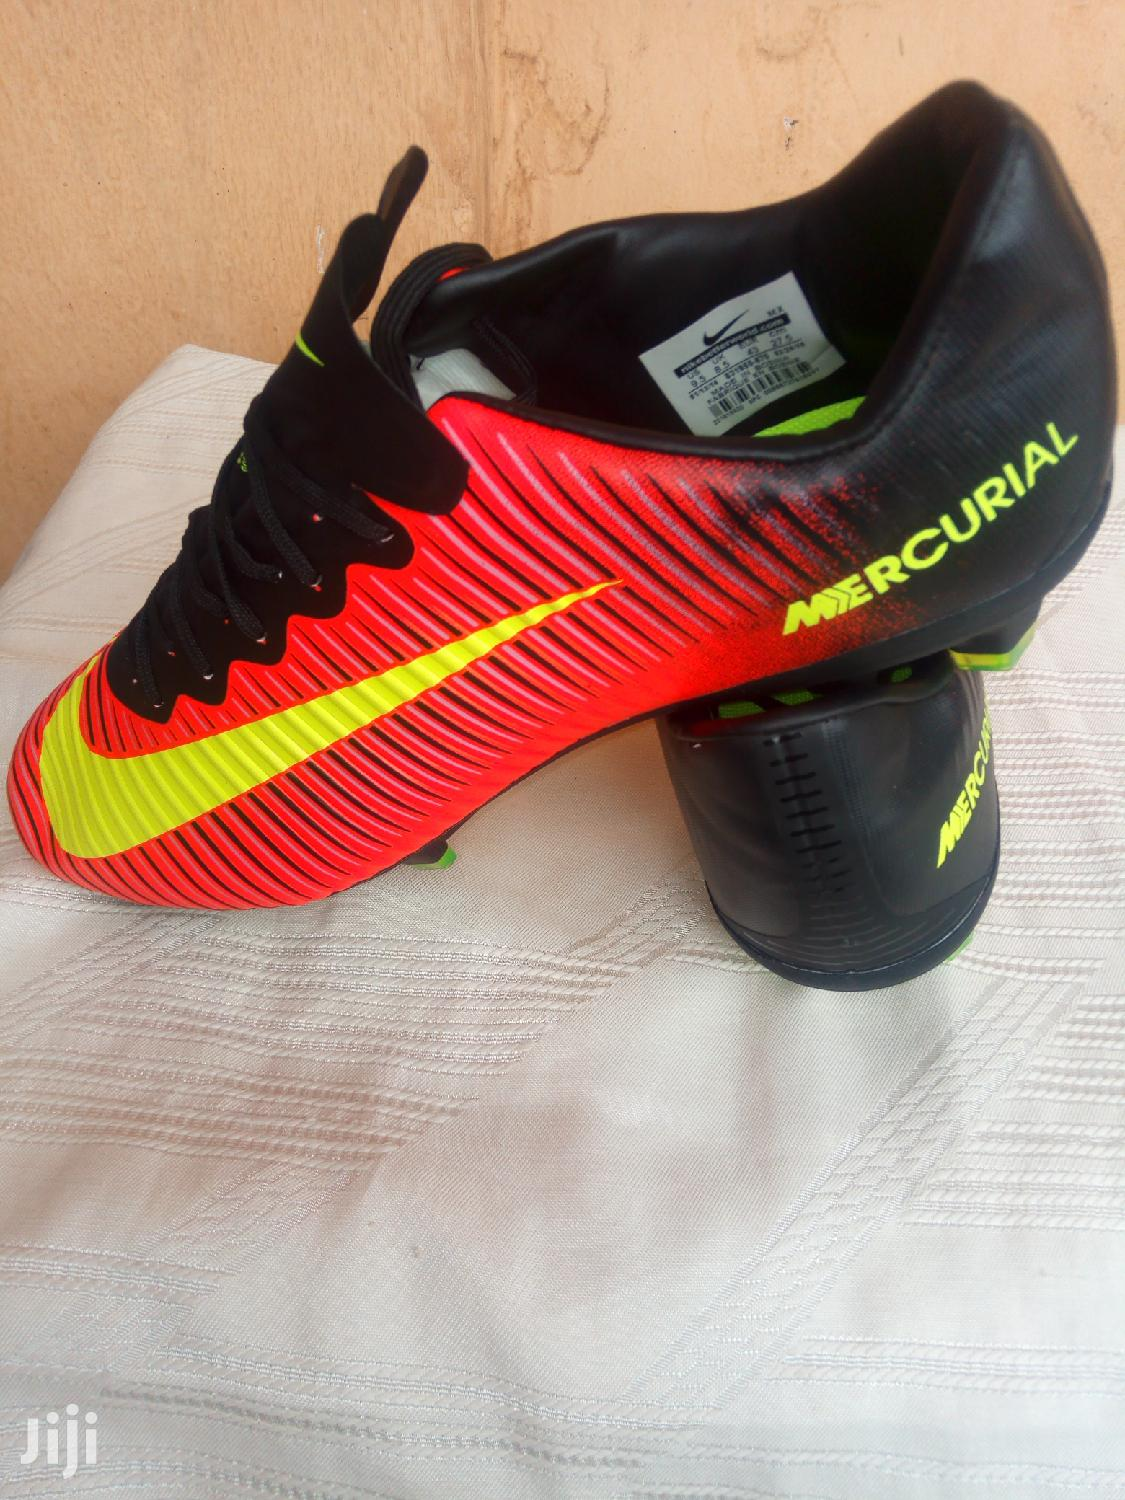 Football Boots | Shoes for sale in Nungua East, Greater Accra, Ghana